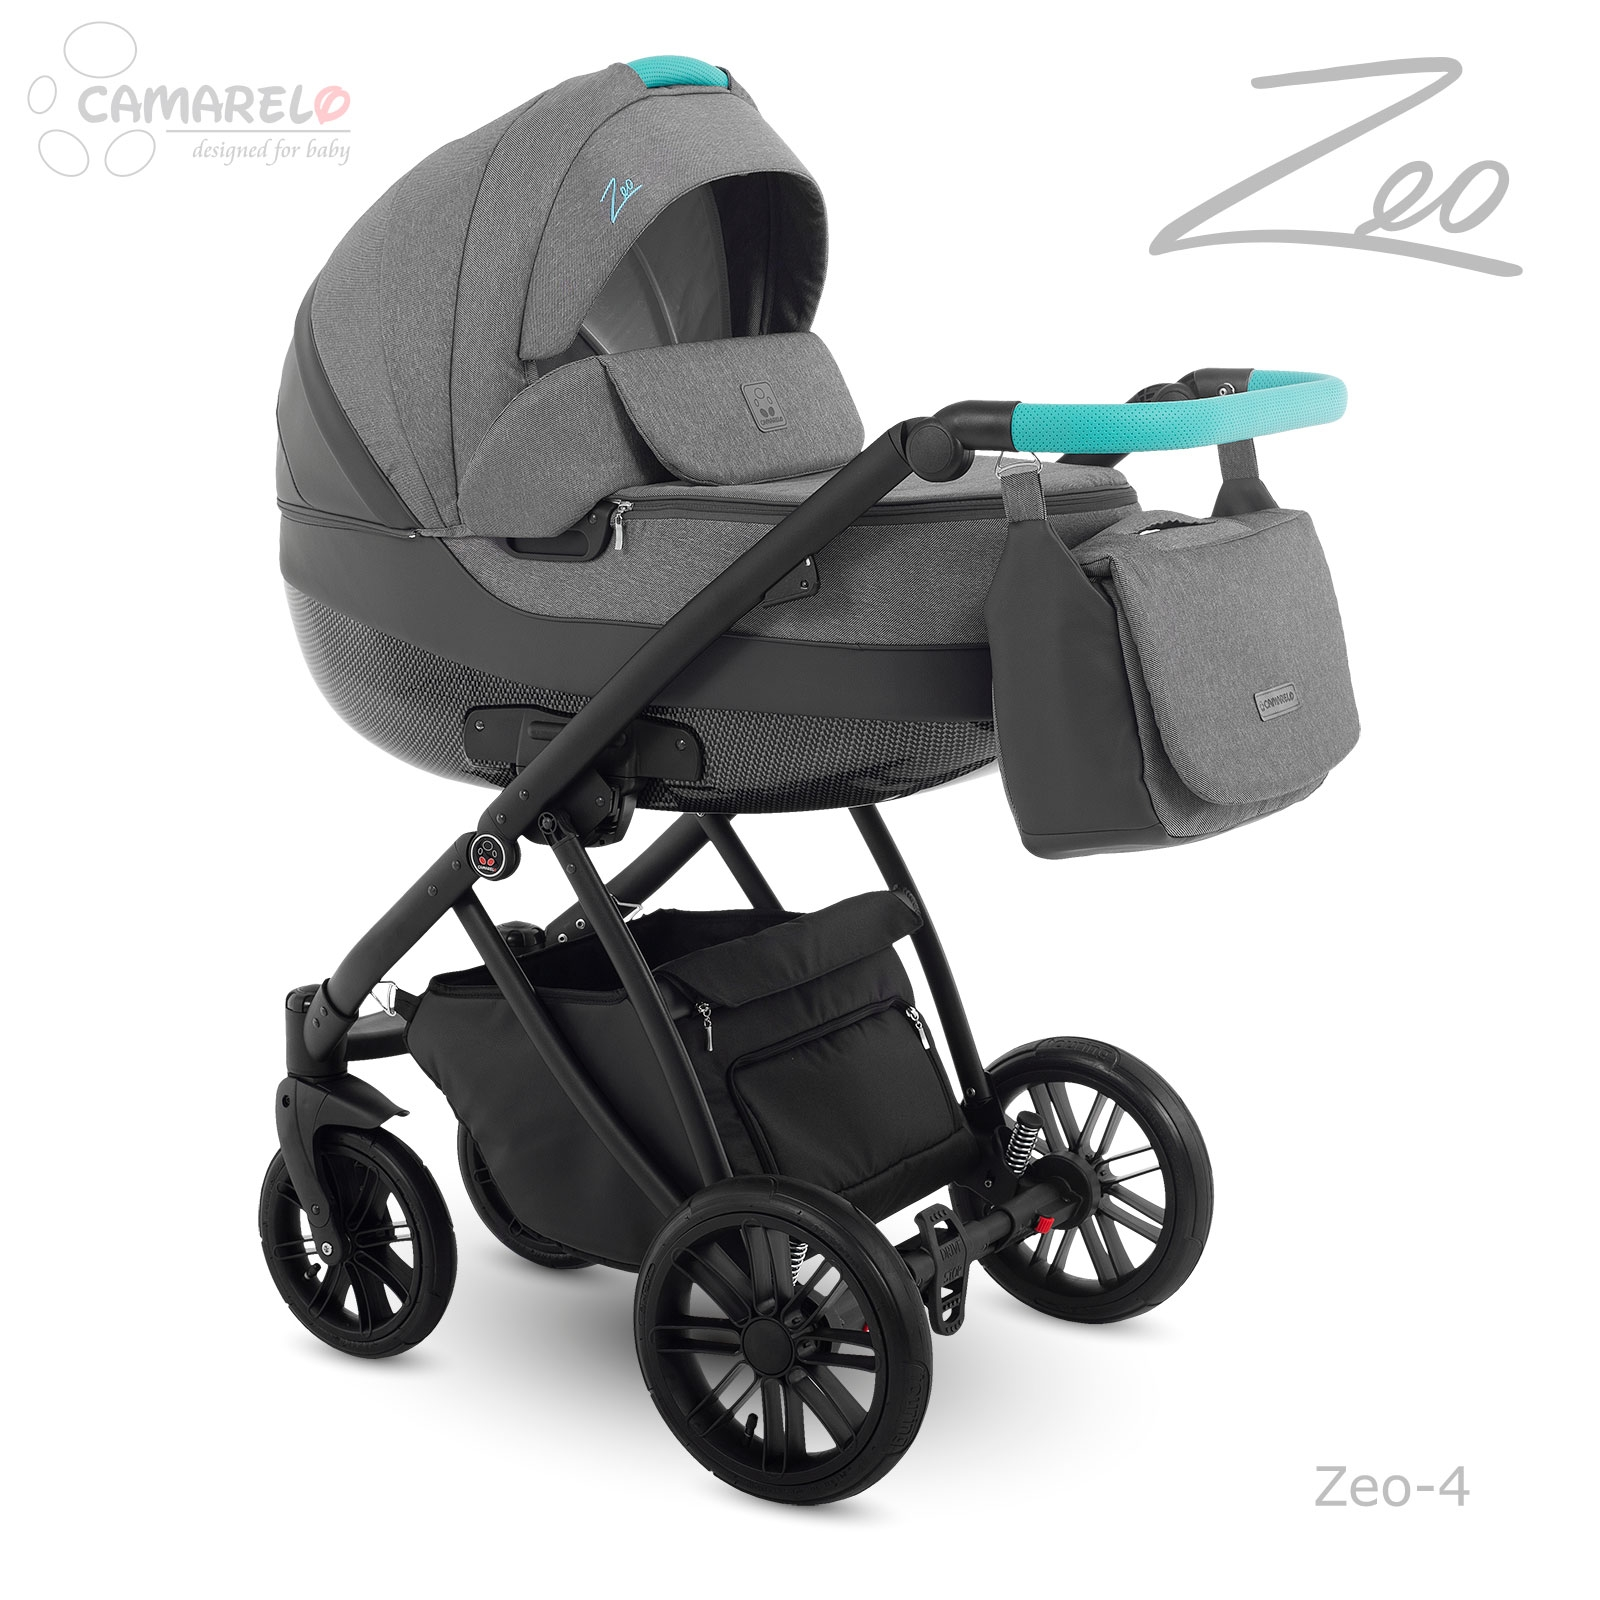 Carucior copii 2 in 1 Zeo Camarelo zeo-4 imagine